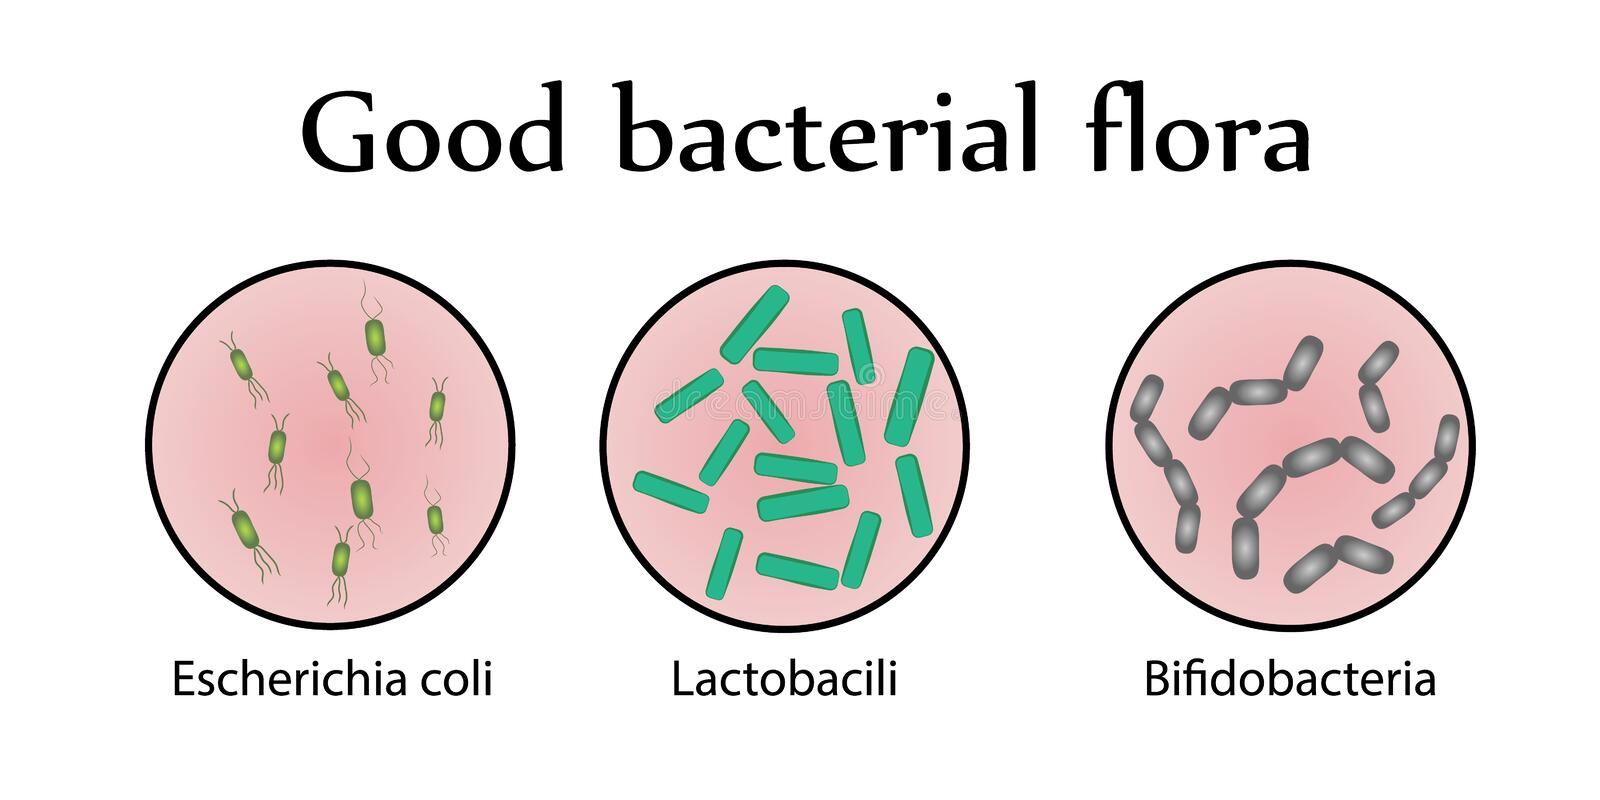 Flora intestinal de las bacterias Buena flora bacteriana Ilustración del vector libre illustration